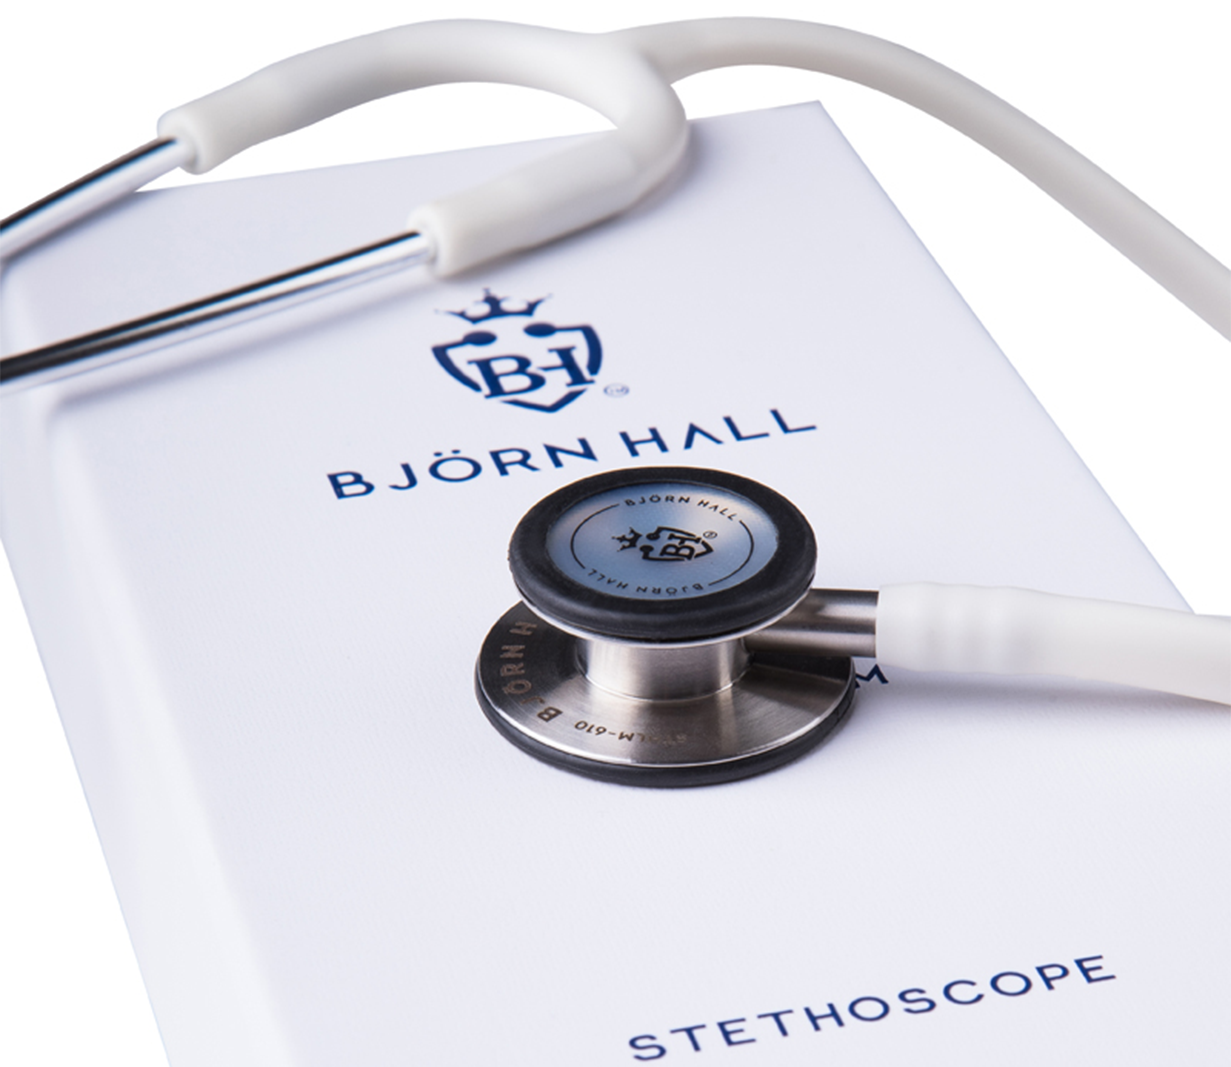 Dual Head Stethoscope With Bell And Diaphragm